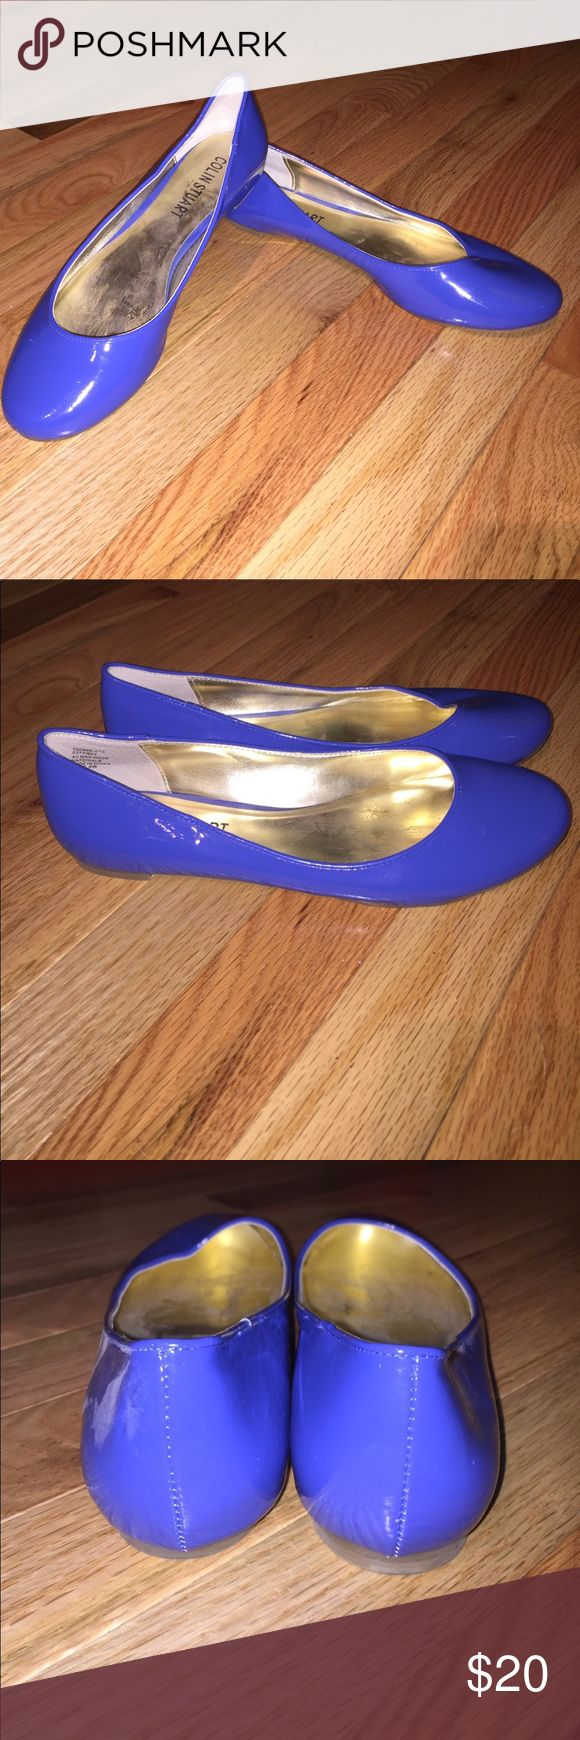 Colin Stuart Ballet Flats Shoes Colin Stuart Royal Blue Ballet Flats. Size: 7.5 B. Excellent Condition, worn only once. Patent leather like material. Colin Stuart Shoes Flats & Loafers